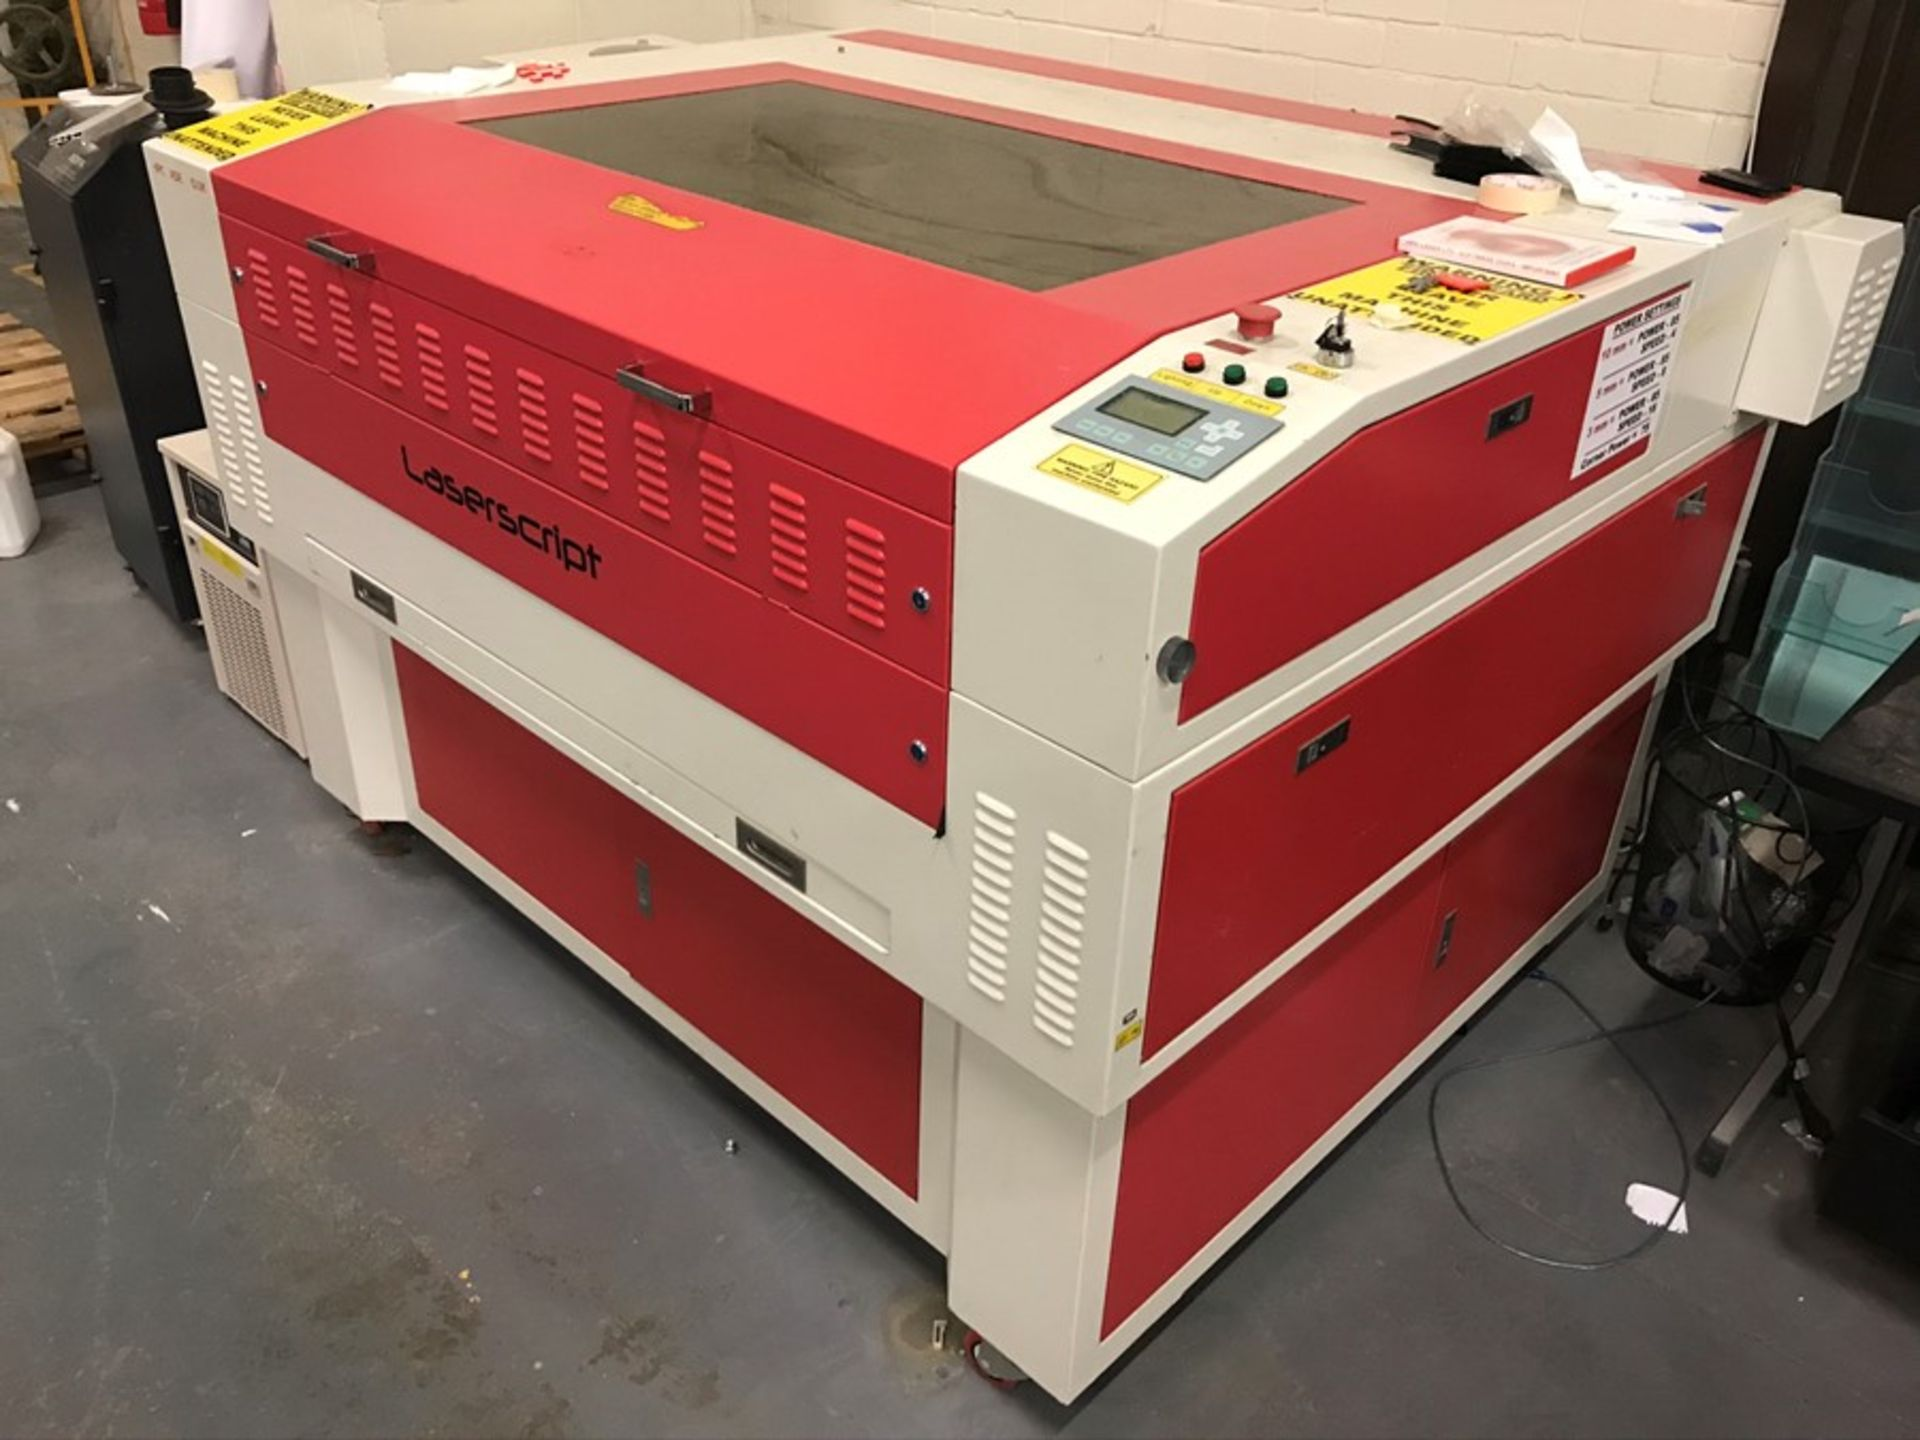 HPC Laser Ltd LS1290 Laserscript engraving machine - Image 9 of 18